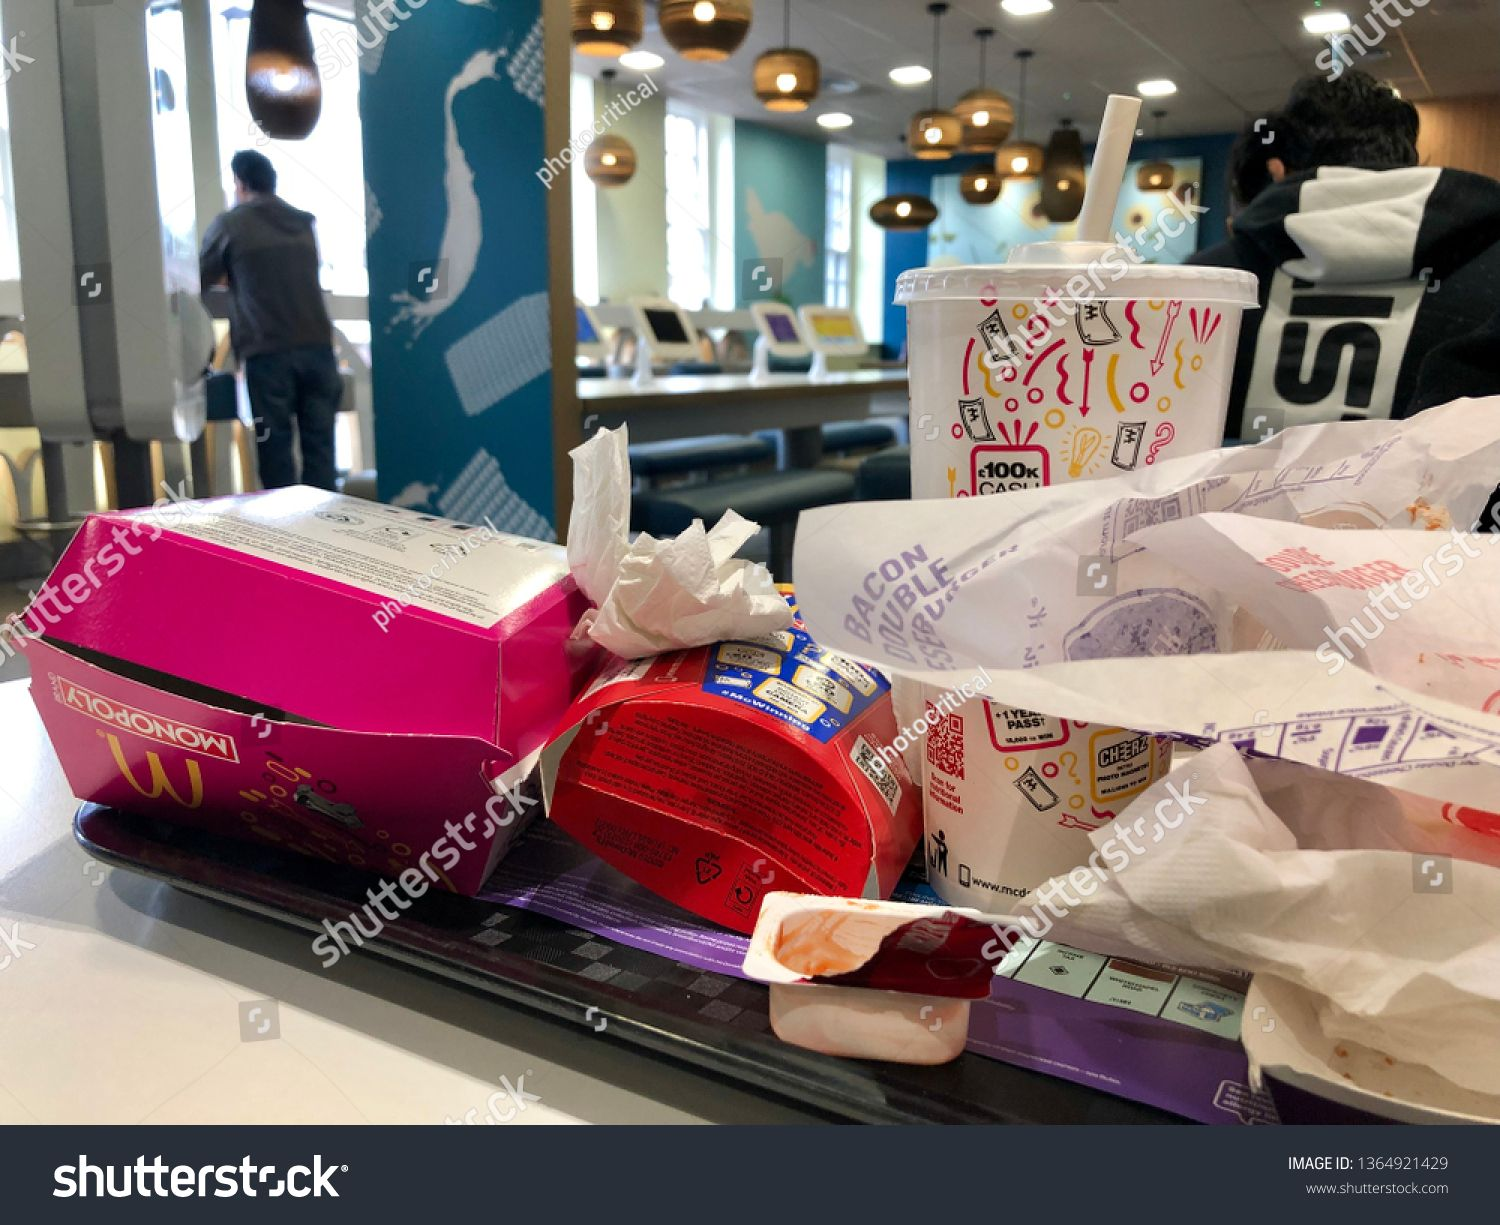 Wembley London April 4 2019 Paper And Plastic Fast Food And Drink Wrappers And Packaging Inside Mcdonald S Restaurant Wedding Thank You Cards West London